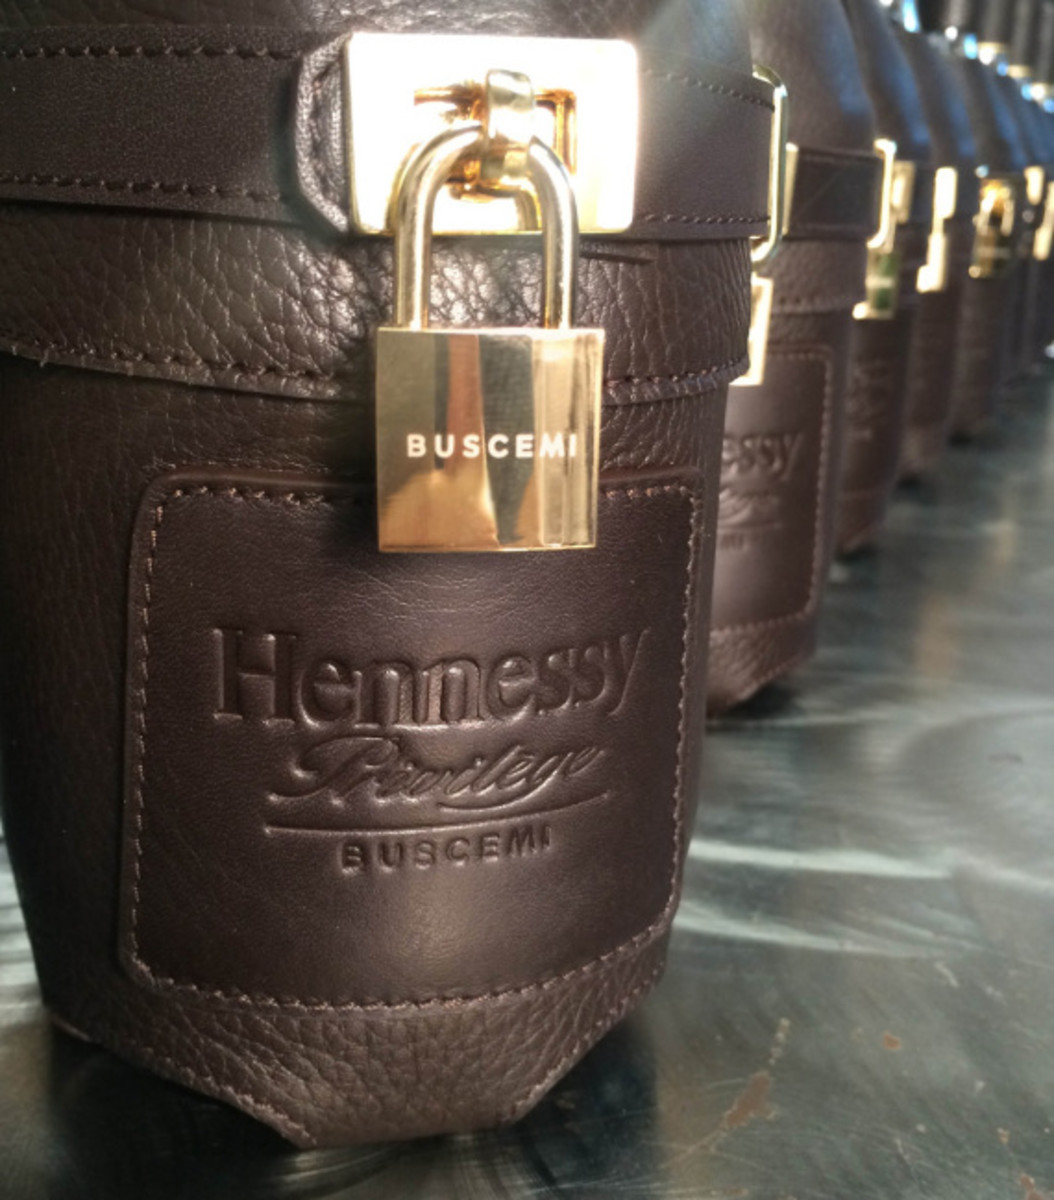 hennessy-vsop-buscemi-decanted-for-art-basel-07